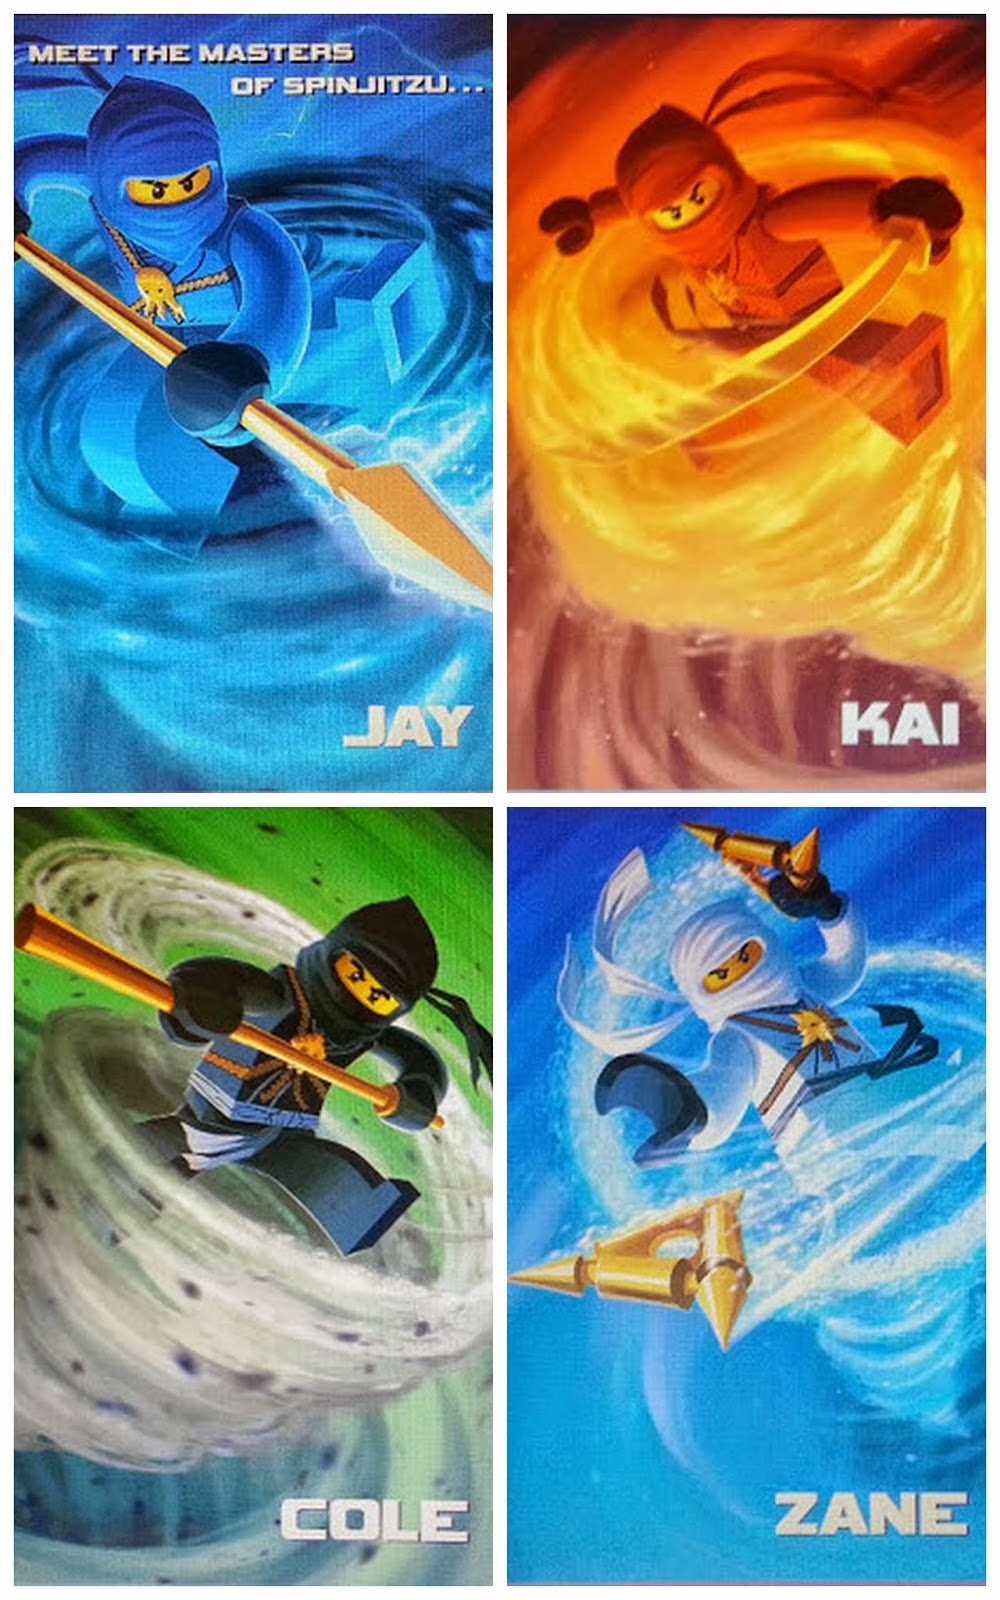 LEGO Ninjago Graphic Novels character artwork